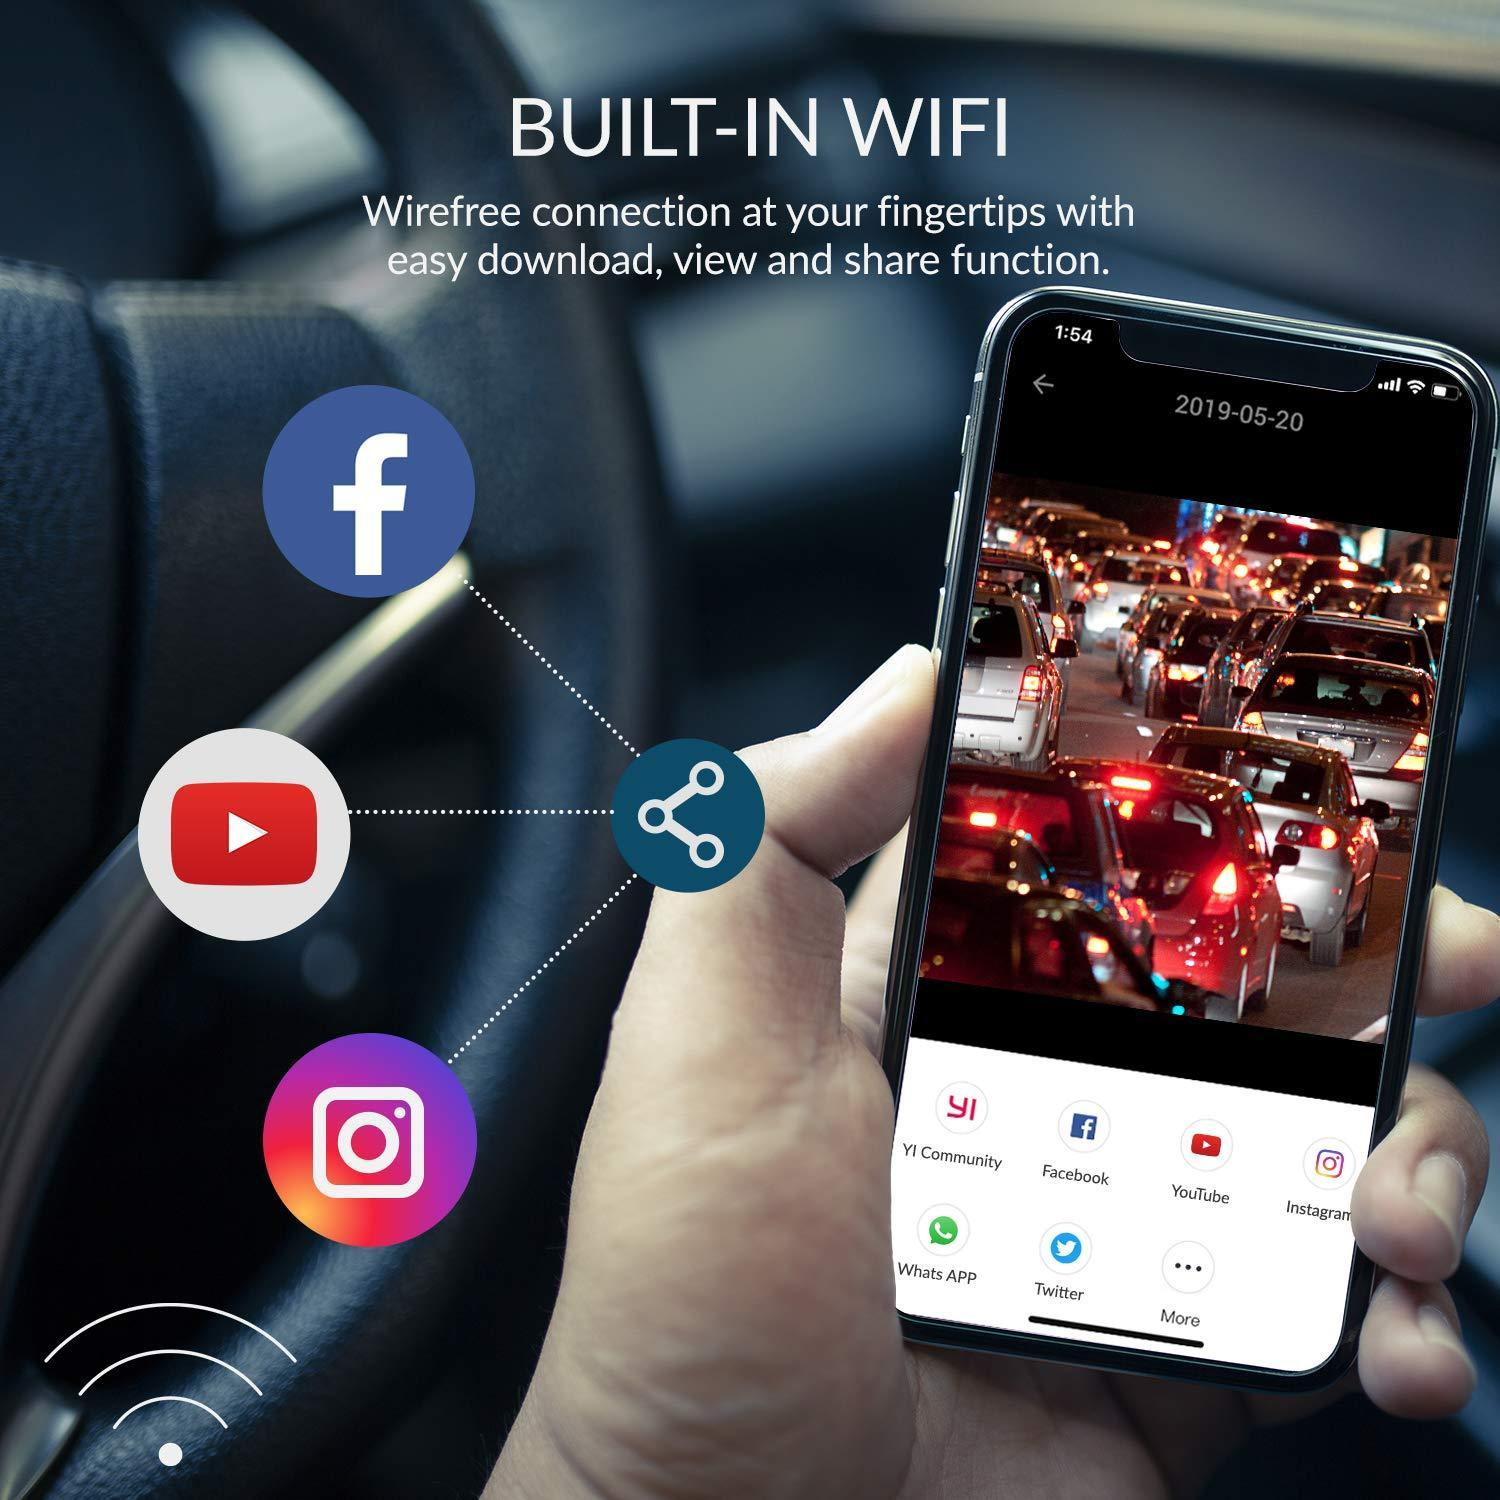 Built-in Wifi - Wirefree connection at your fingertips with easy download, view and share function